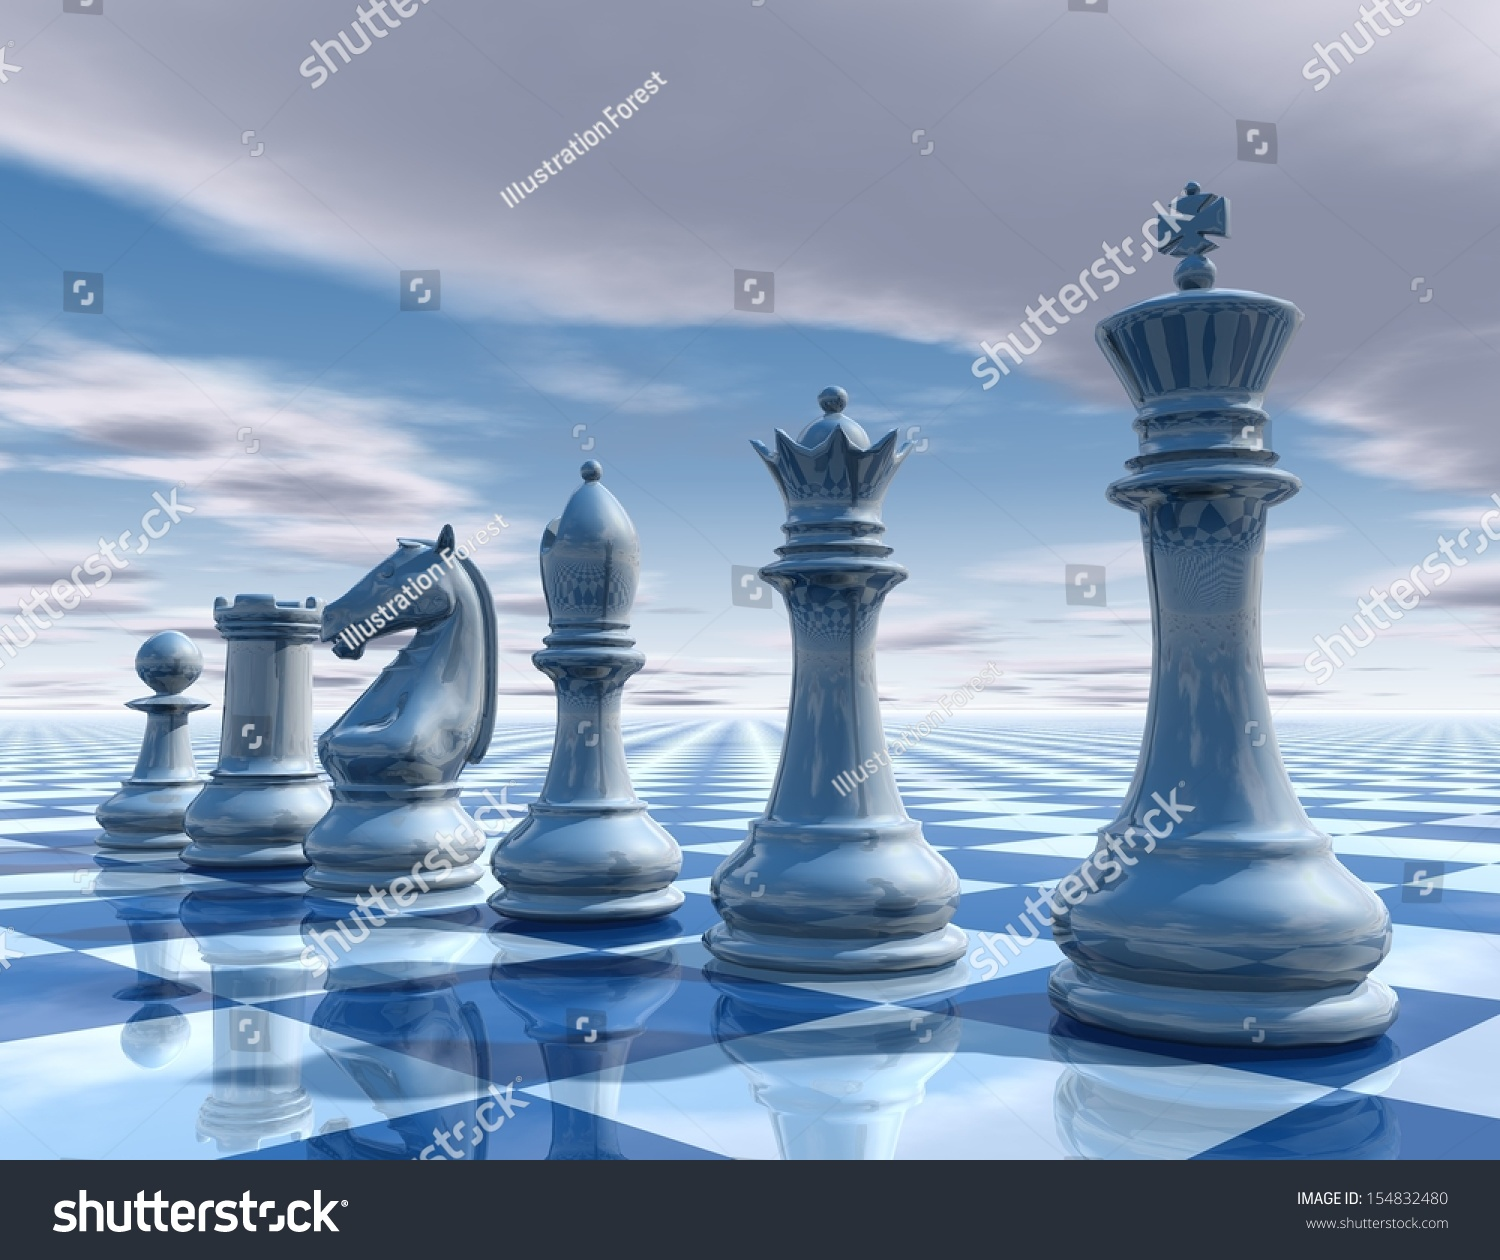 free illustration chessboard render - photo #29